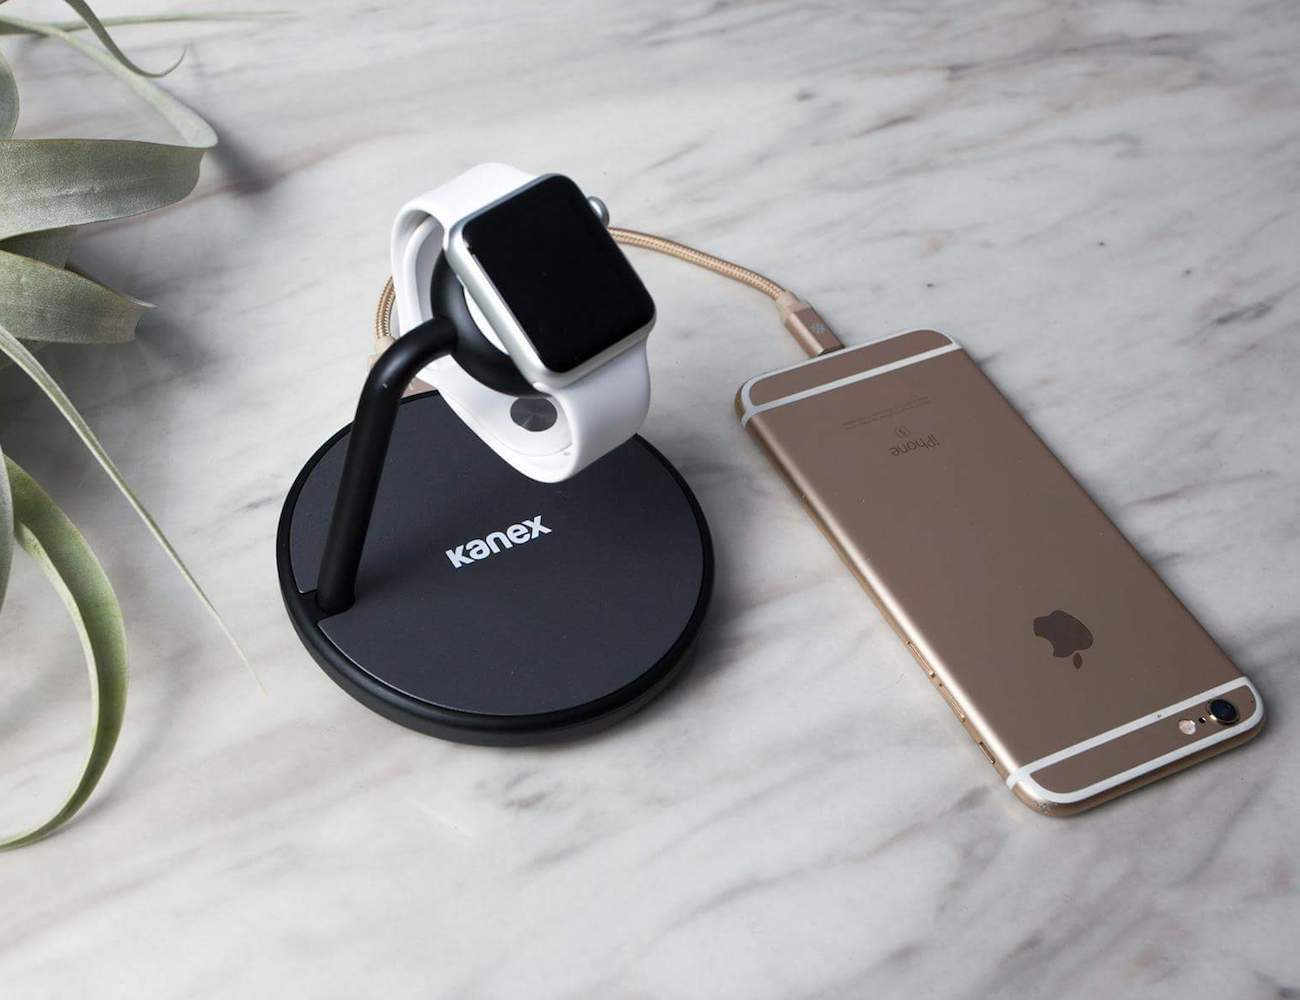 Kanex GoPower Apple Watch Stand and iPhone Charger